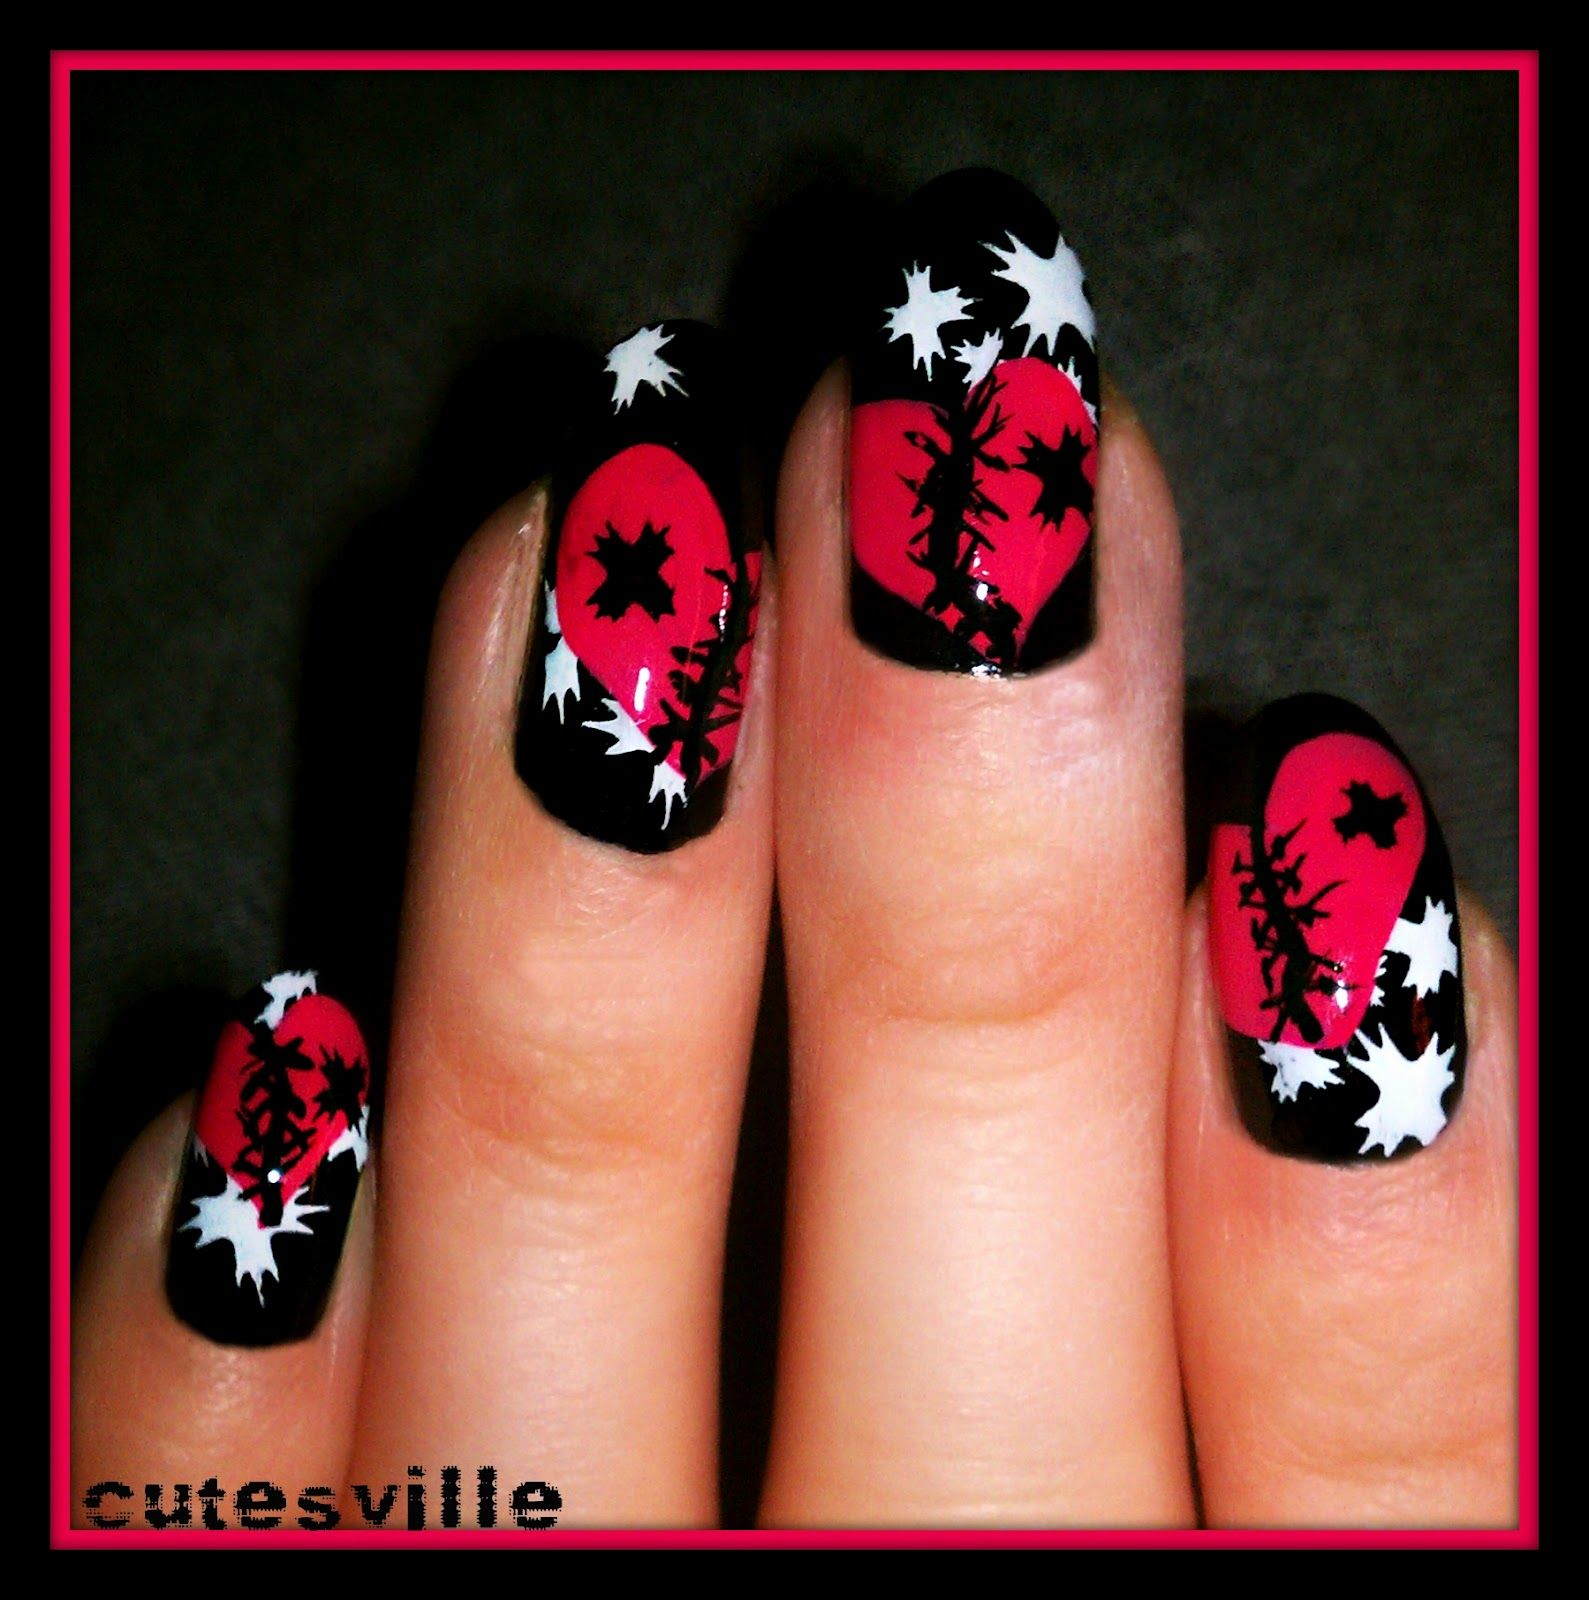 Pin de Chelsea Burkhart en nails | Pinterest